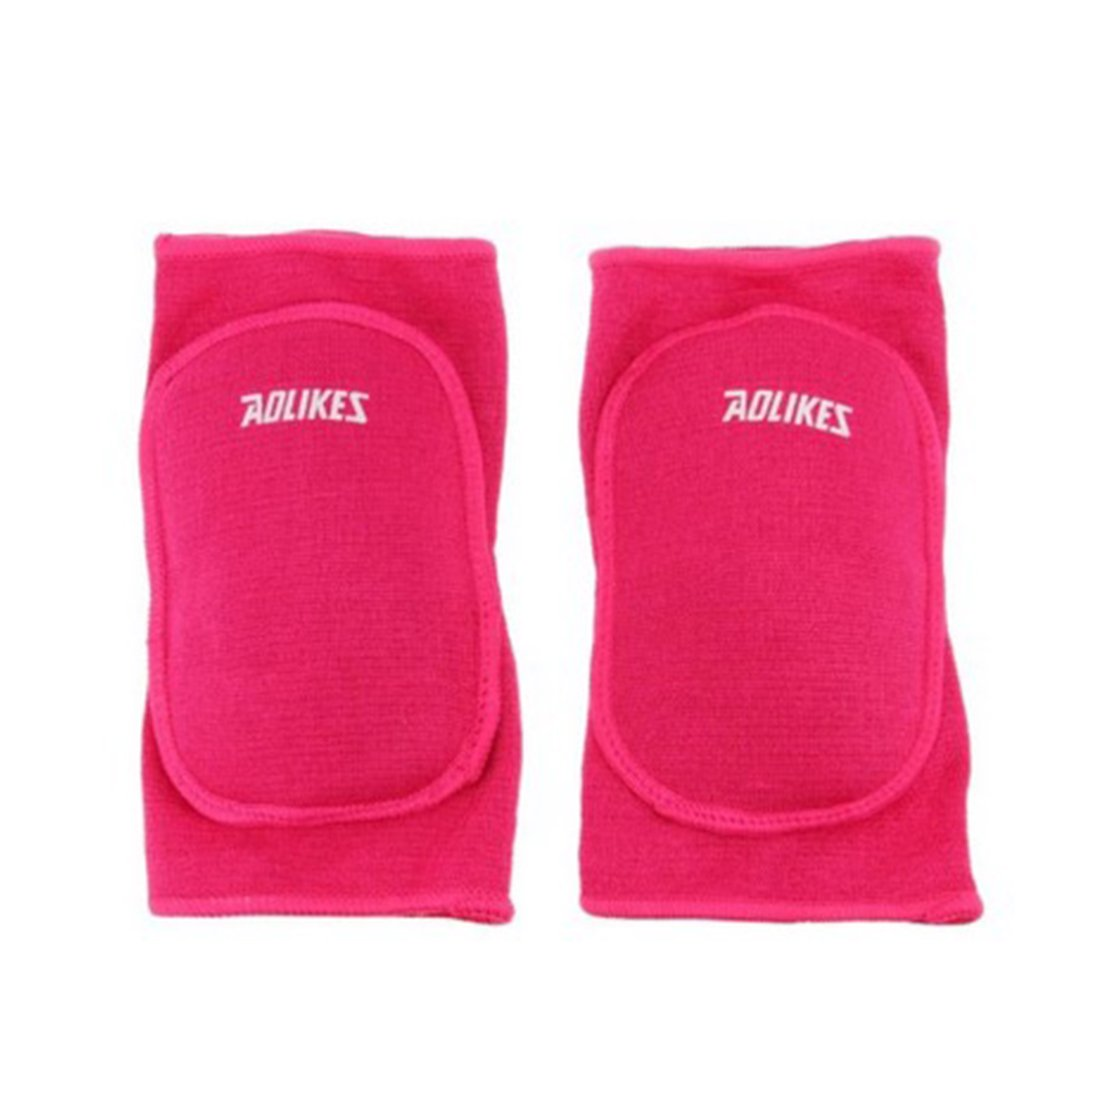 Children Kids Stretchy Cotton Knee Pads Brace Warp Sleeve For Kids Sport Dance (M:for 8-15 years old kids, Pink(Aolikes))